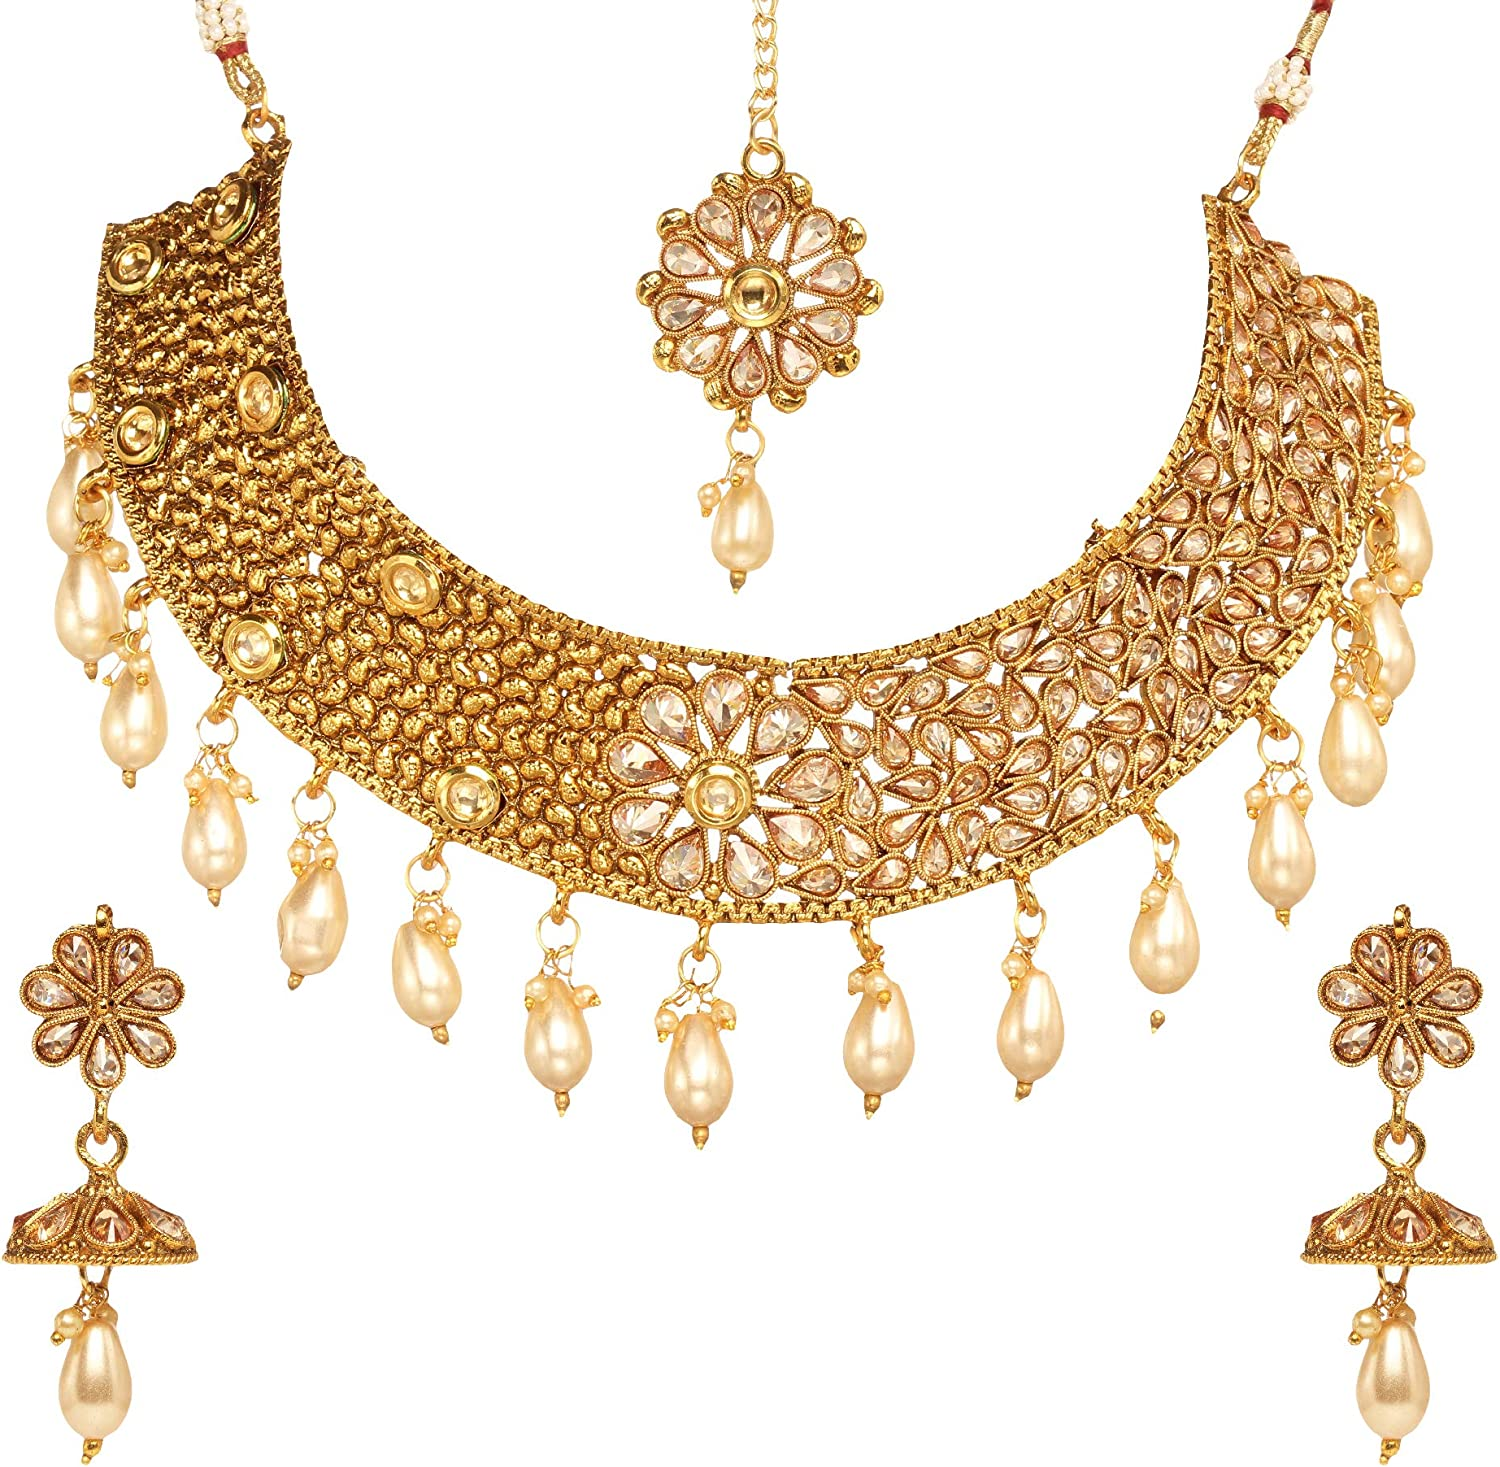 Bindhani Brides Wedding Party Wear Traditional Bridesmaid Ethnic Bridal Bollywood Jewelry Gold Plated Kundan Necklace Earrings Tikka Tika Indian Style Choker Jewellery Set for Women